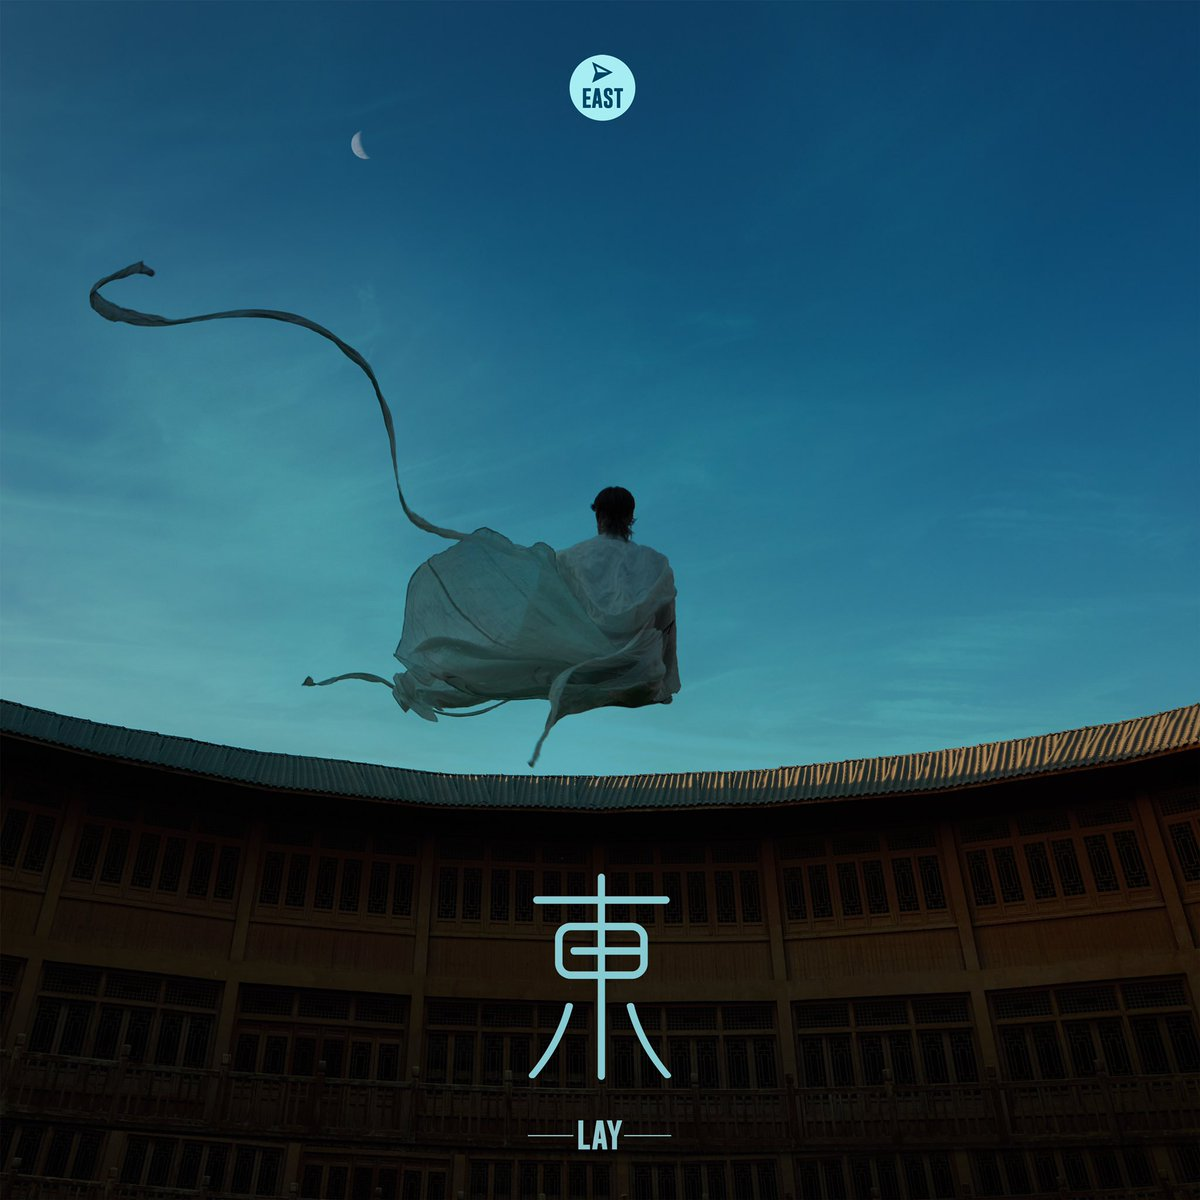 Excited to share my new digital EP EAST! In Chinese it's called 东!It's the start of something new and exciting! EAST ➡️ orcd.co/east